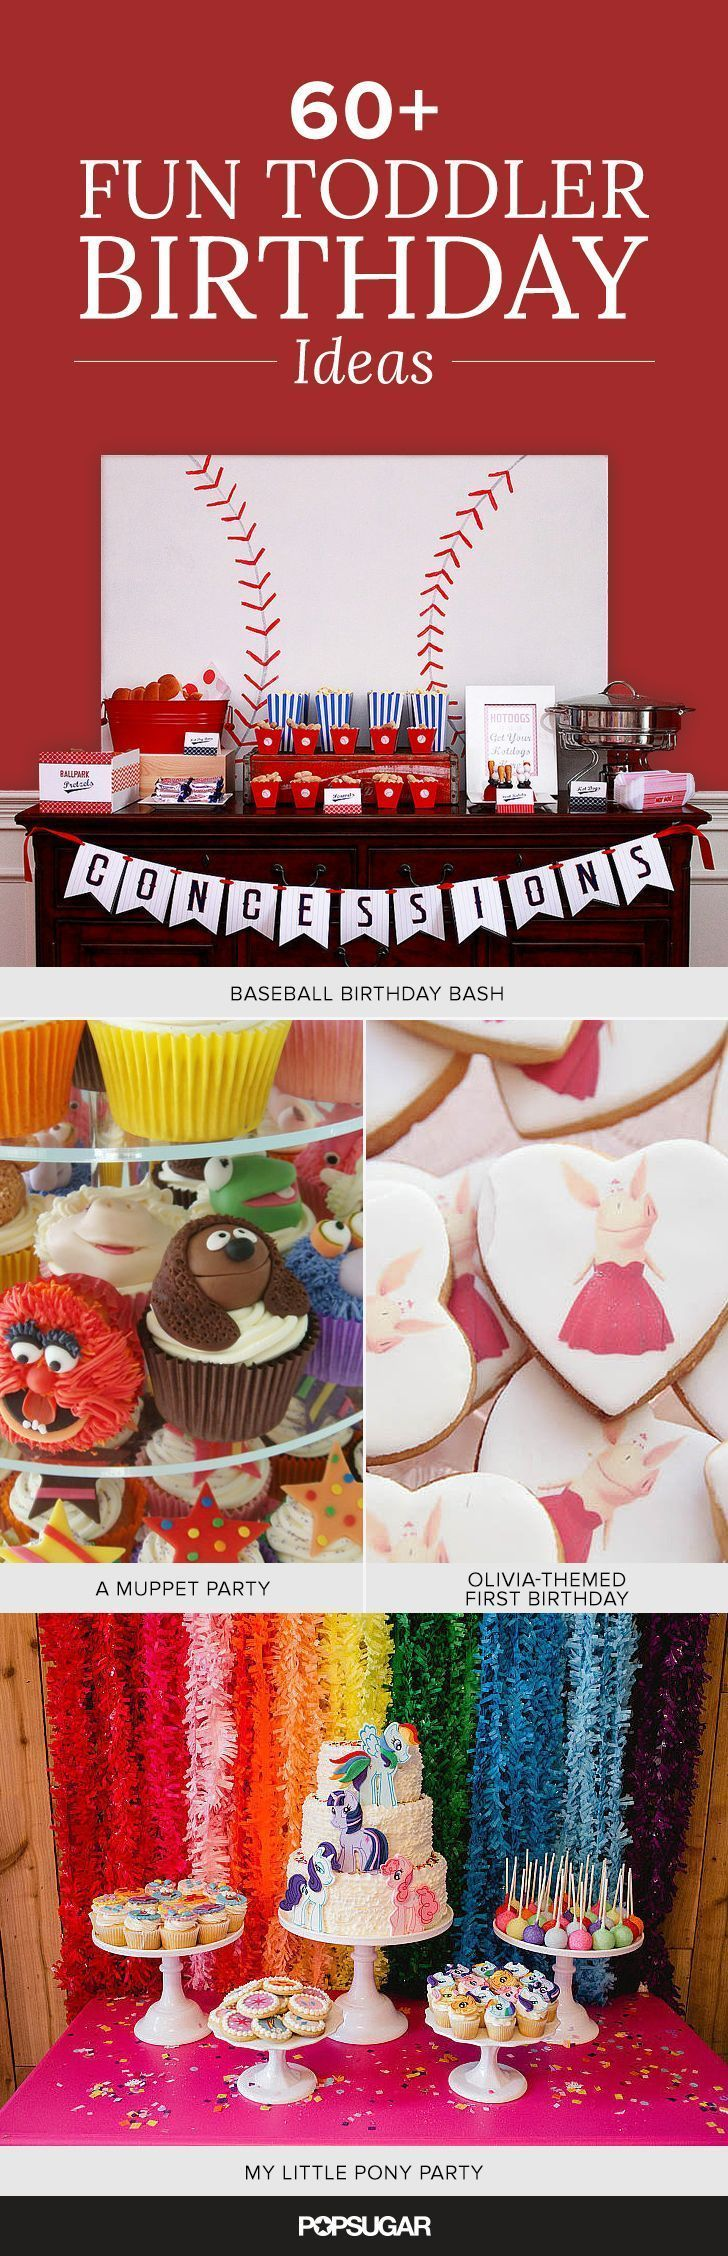 birthdays 2 Easy 2 year old birthday cake ideas girl - share this imagesave these easy 2 year old birthday cake ideas girl for later find this pin and more on ideas for jp by kari bozikis tutorial explaining how to make figure number 2 cakes without the need of expensive specialist tins.